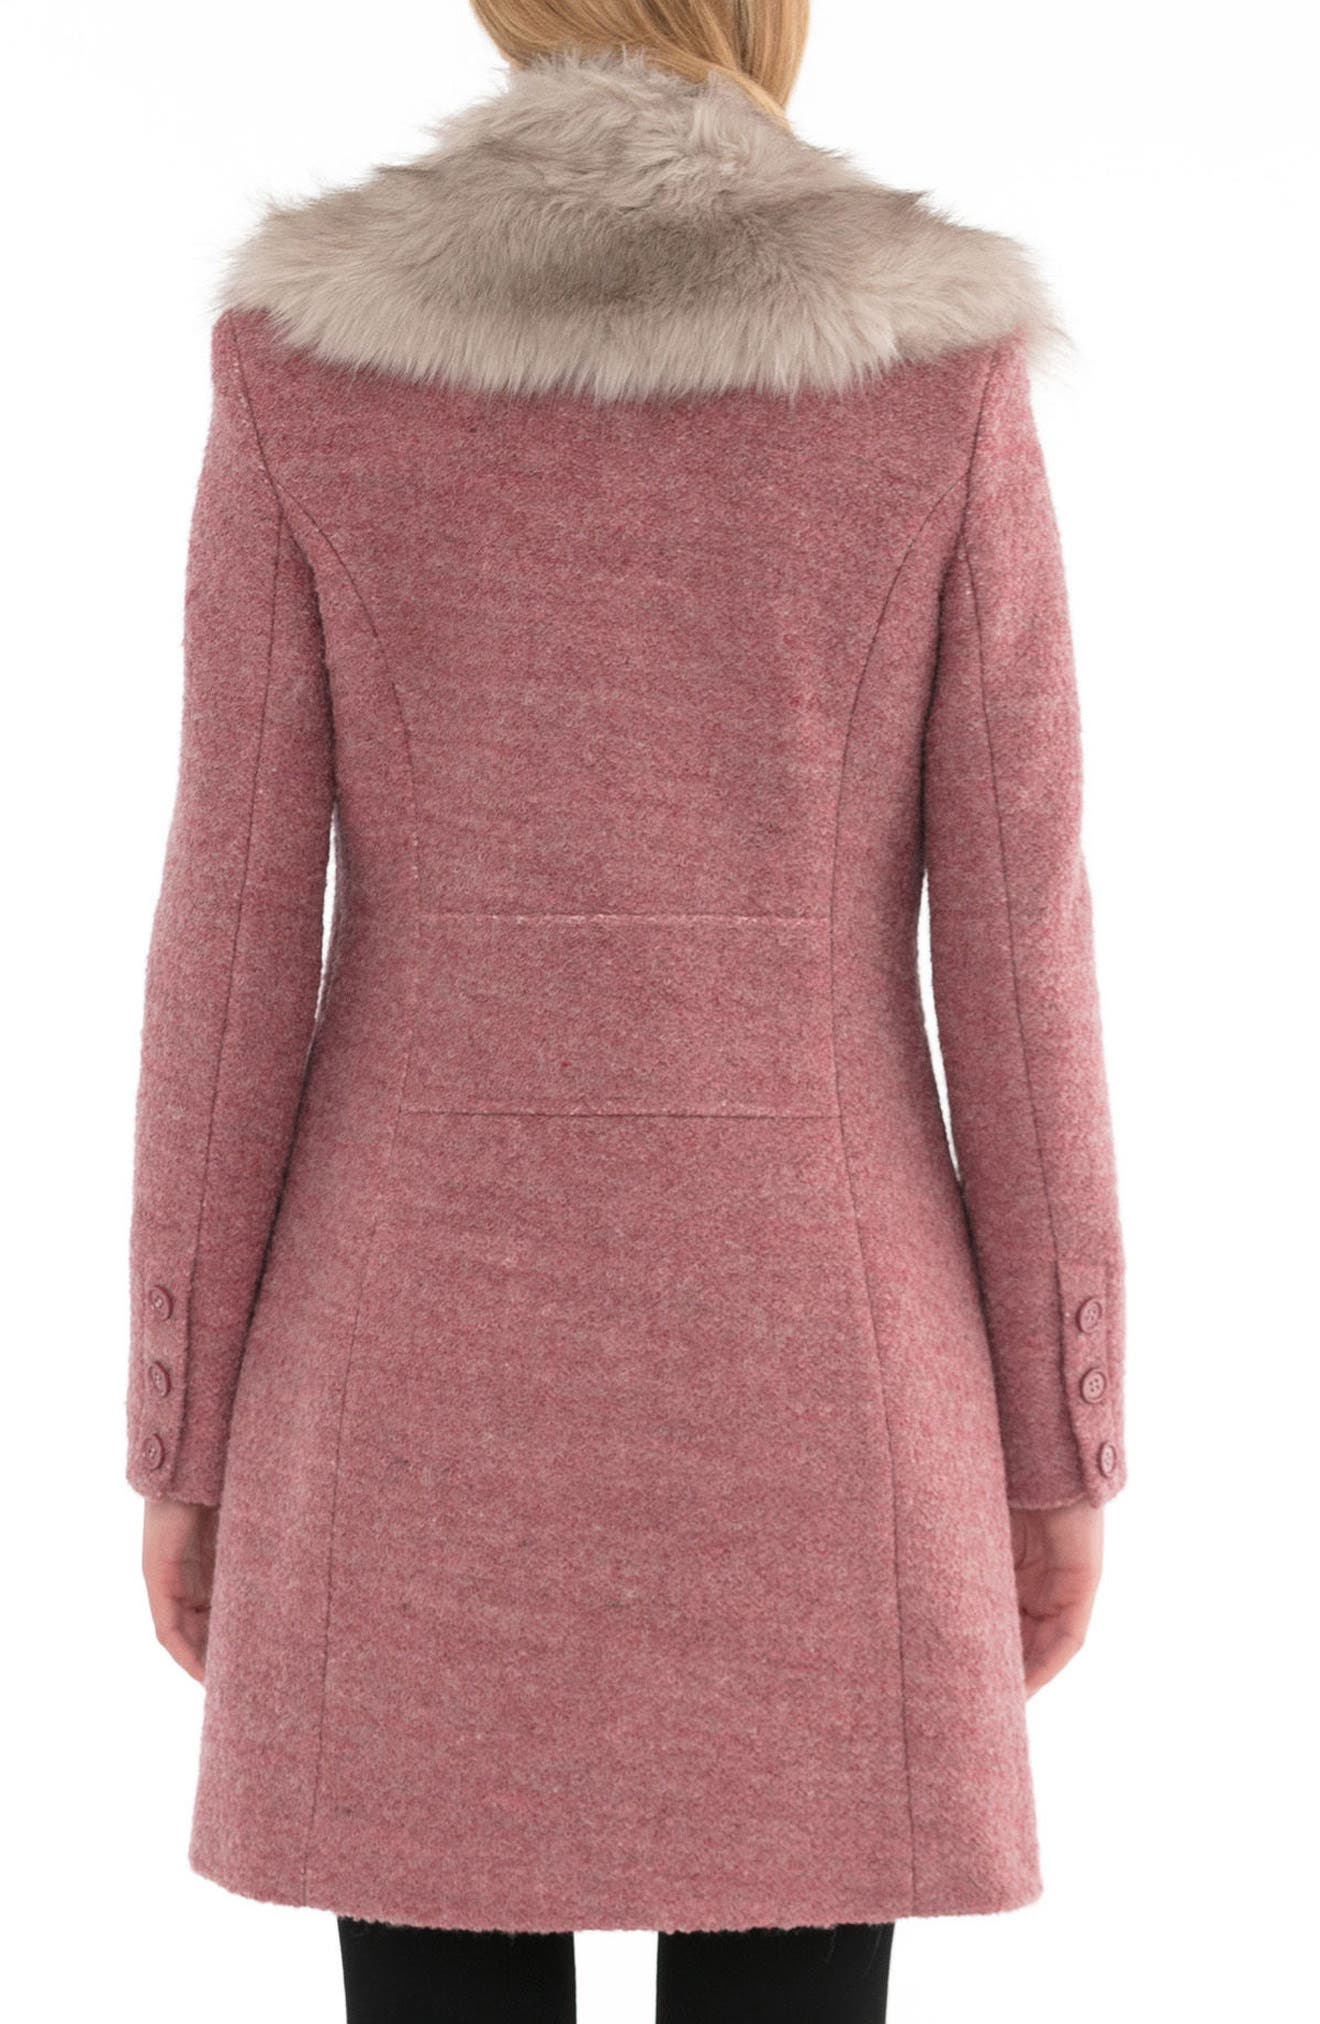 Alternate Image 2  - Belle Badgley Mischka 'Holly' Faux Fur Collar Bouclé Coat